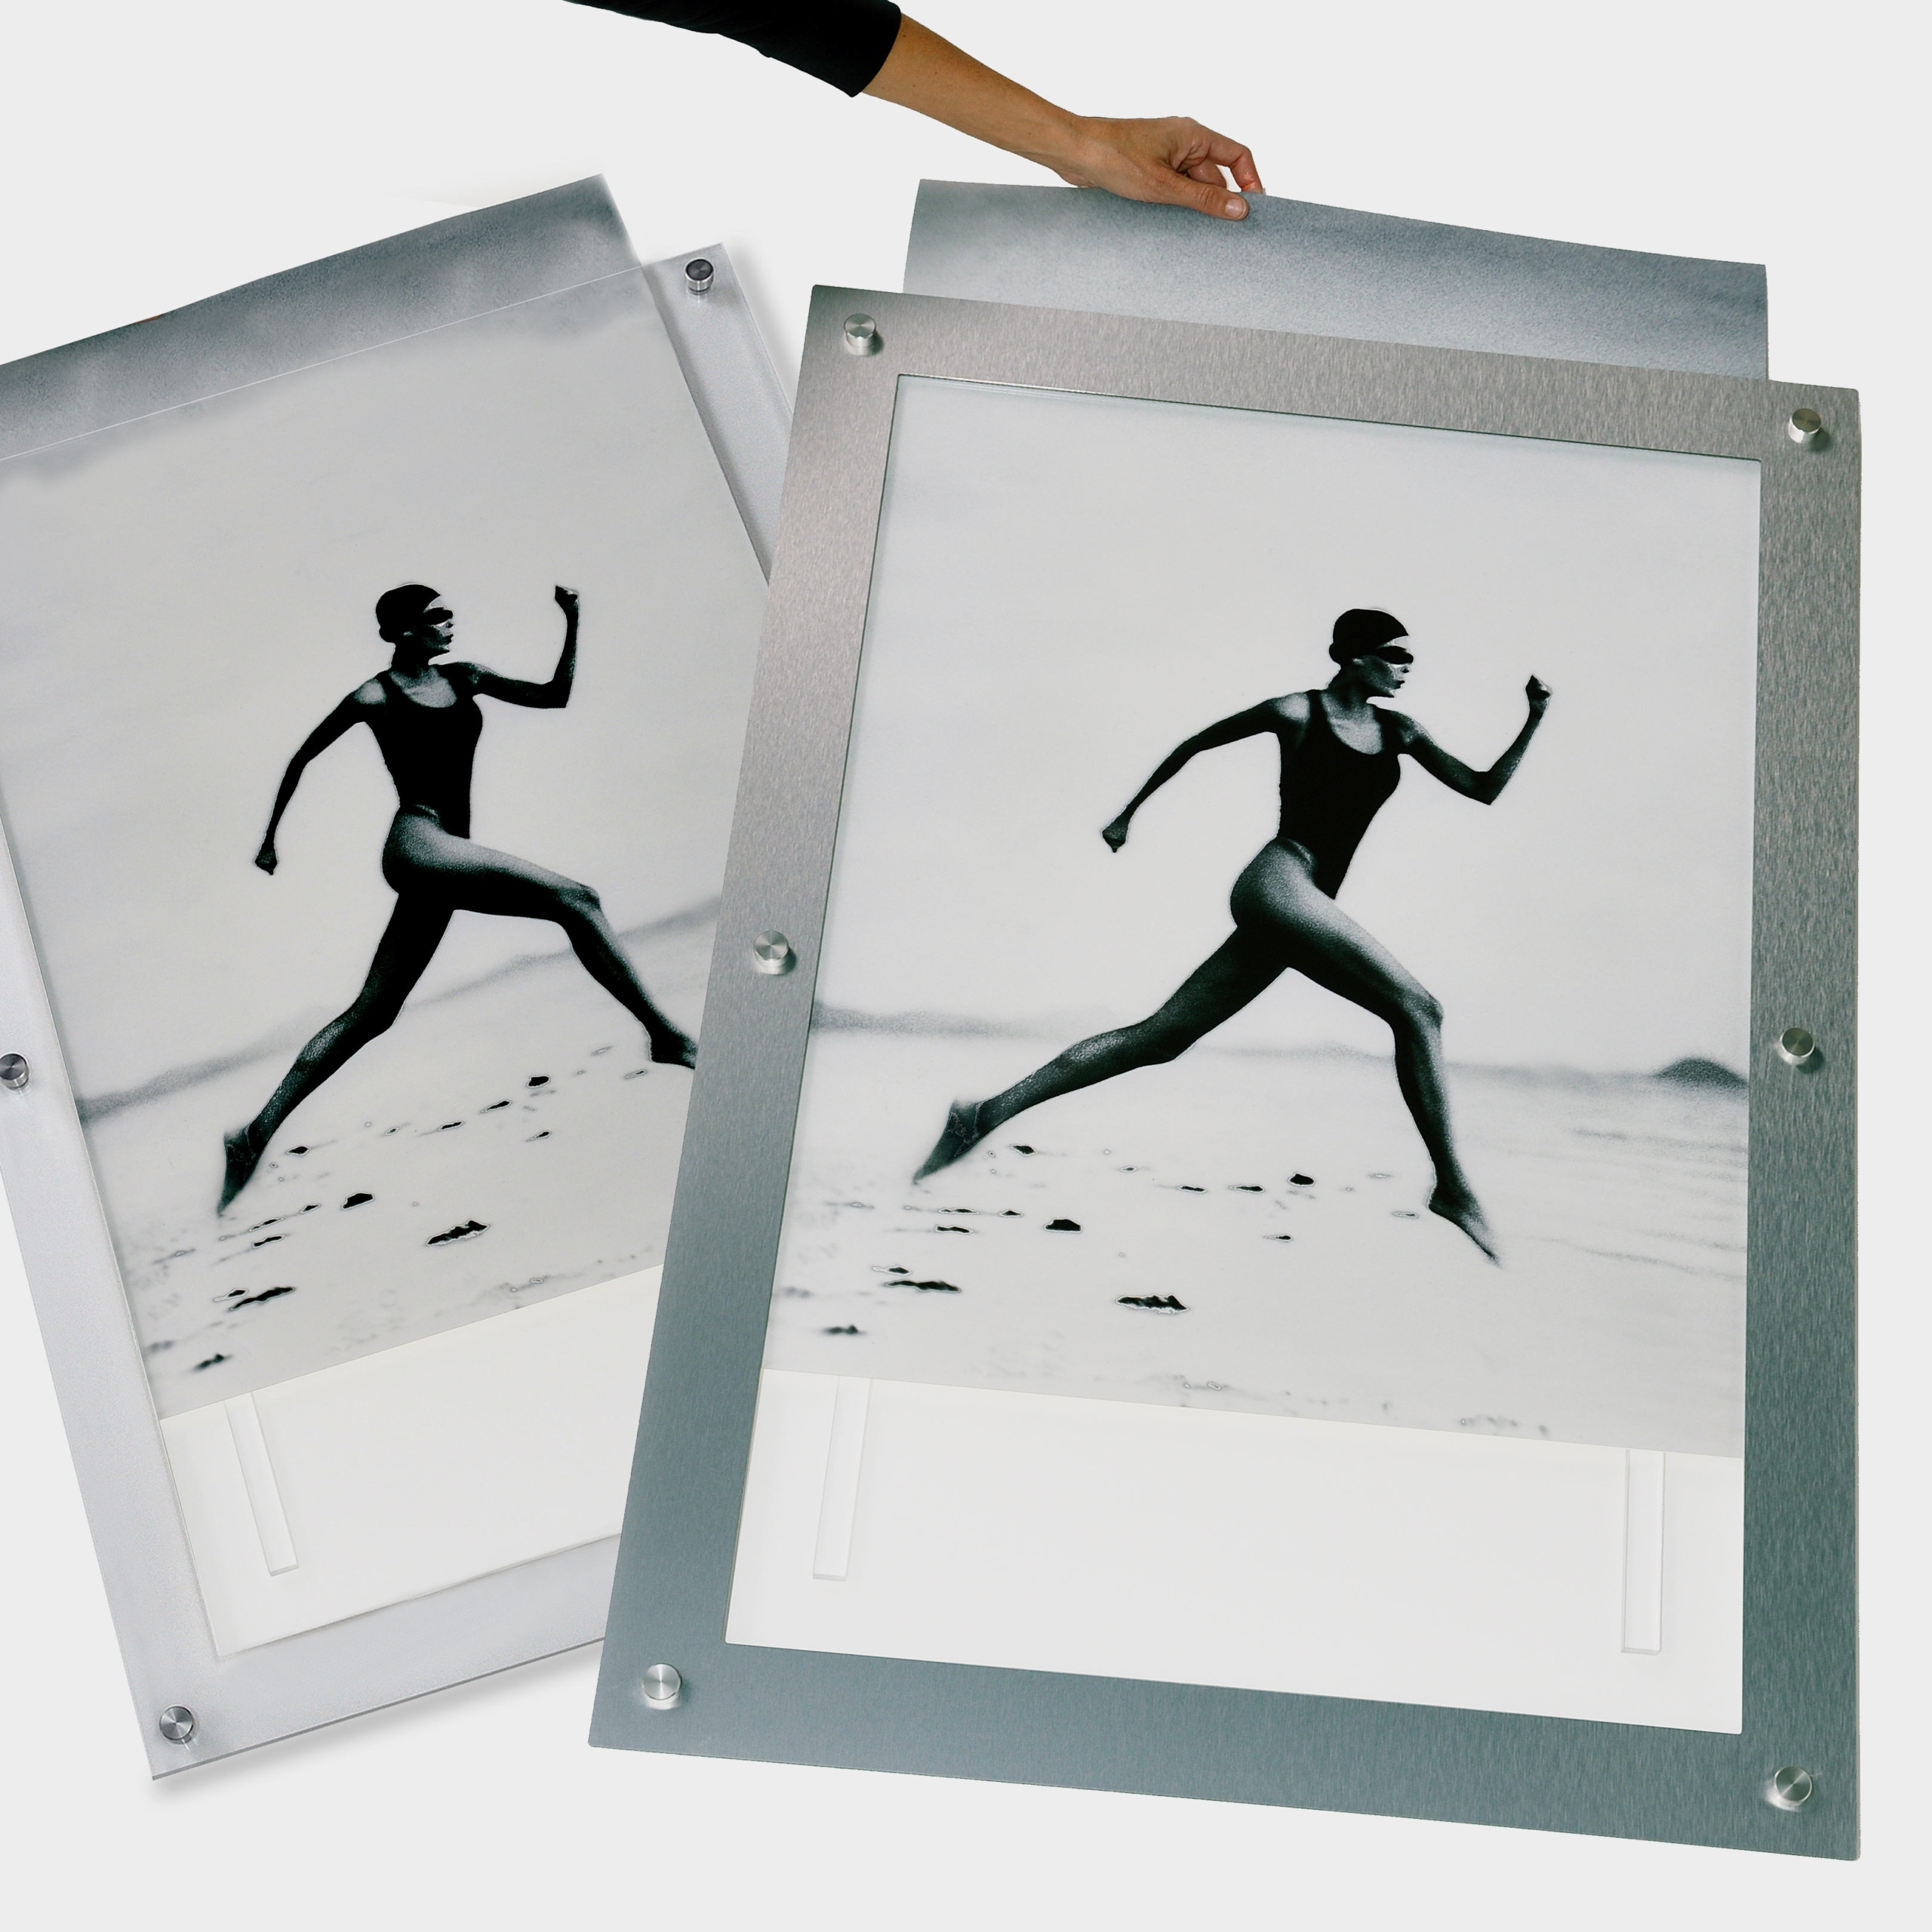 CUSTOMIZE YOUR IMAGE DISPLAY AND SIGNAGE SOLUTIONS